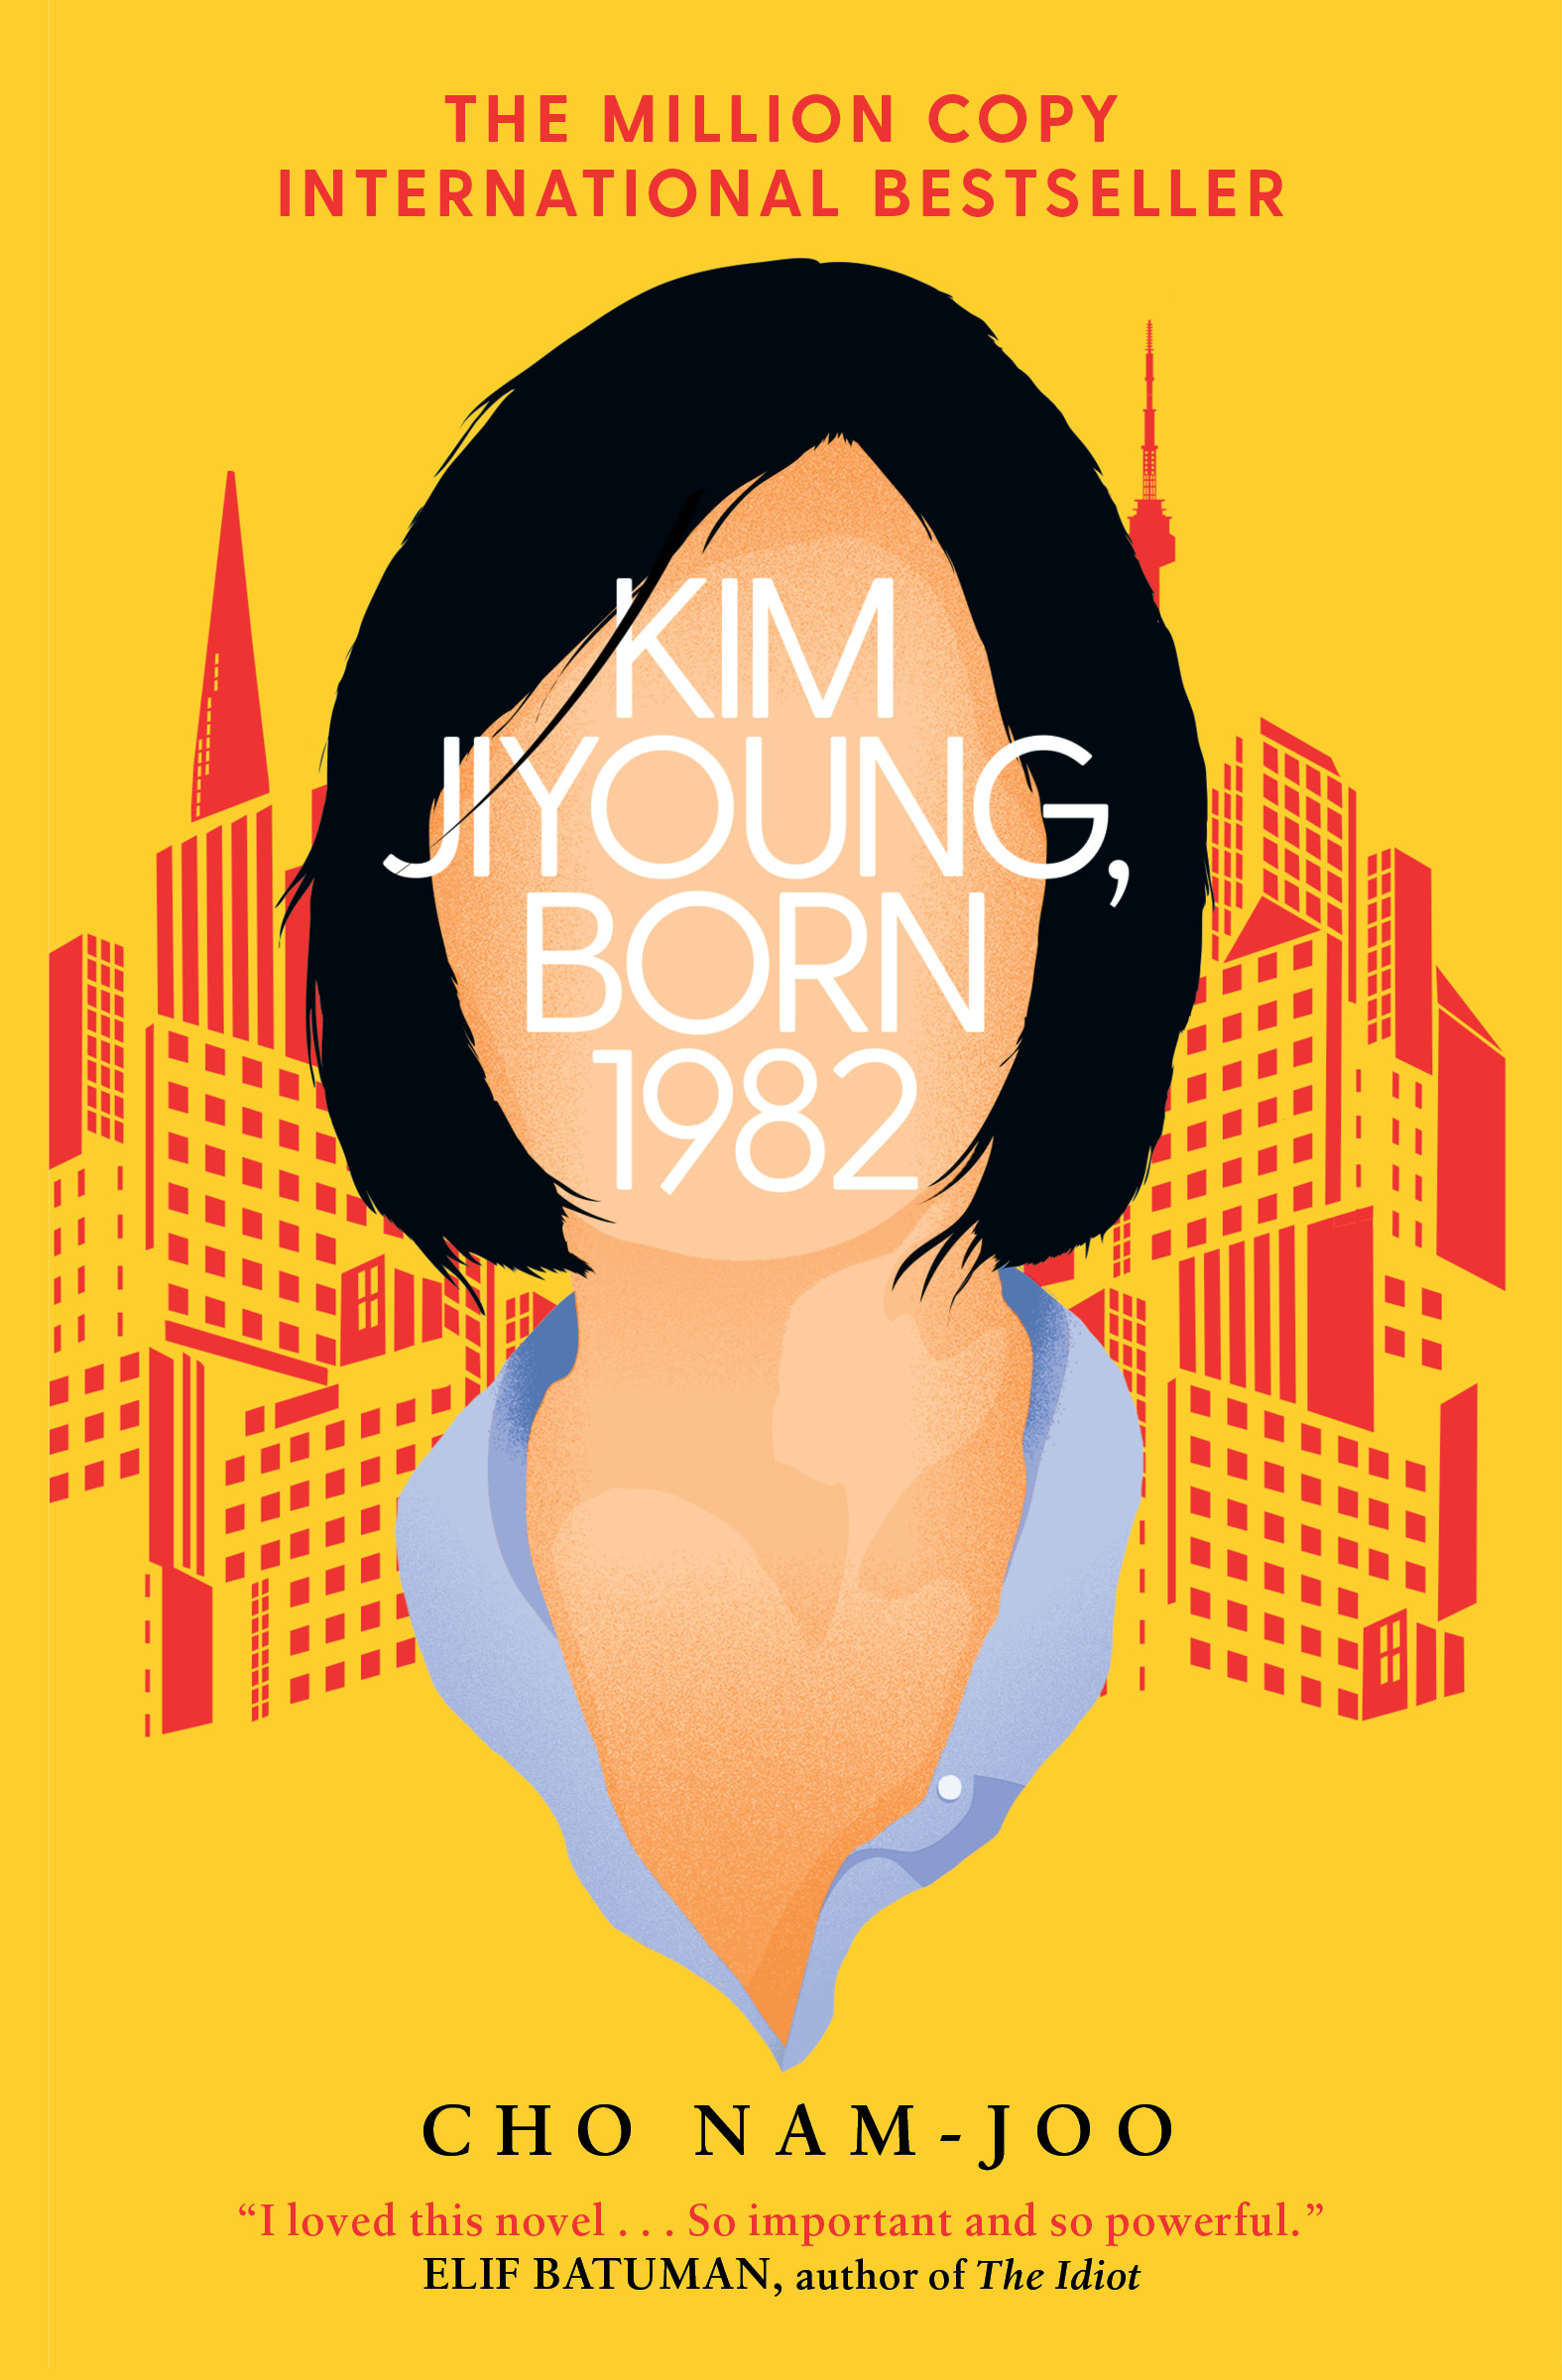 Cover Image of Kim Ji-young, Born 1982